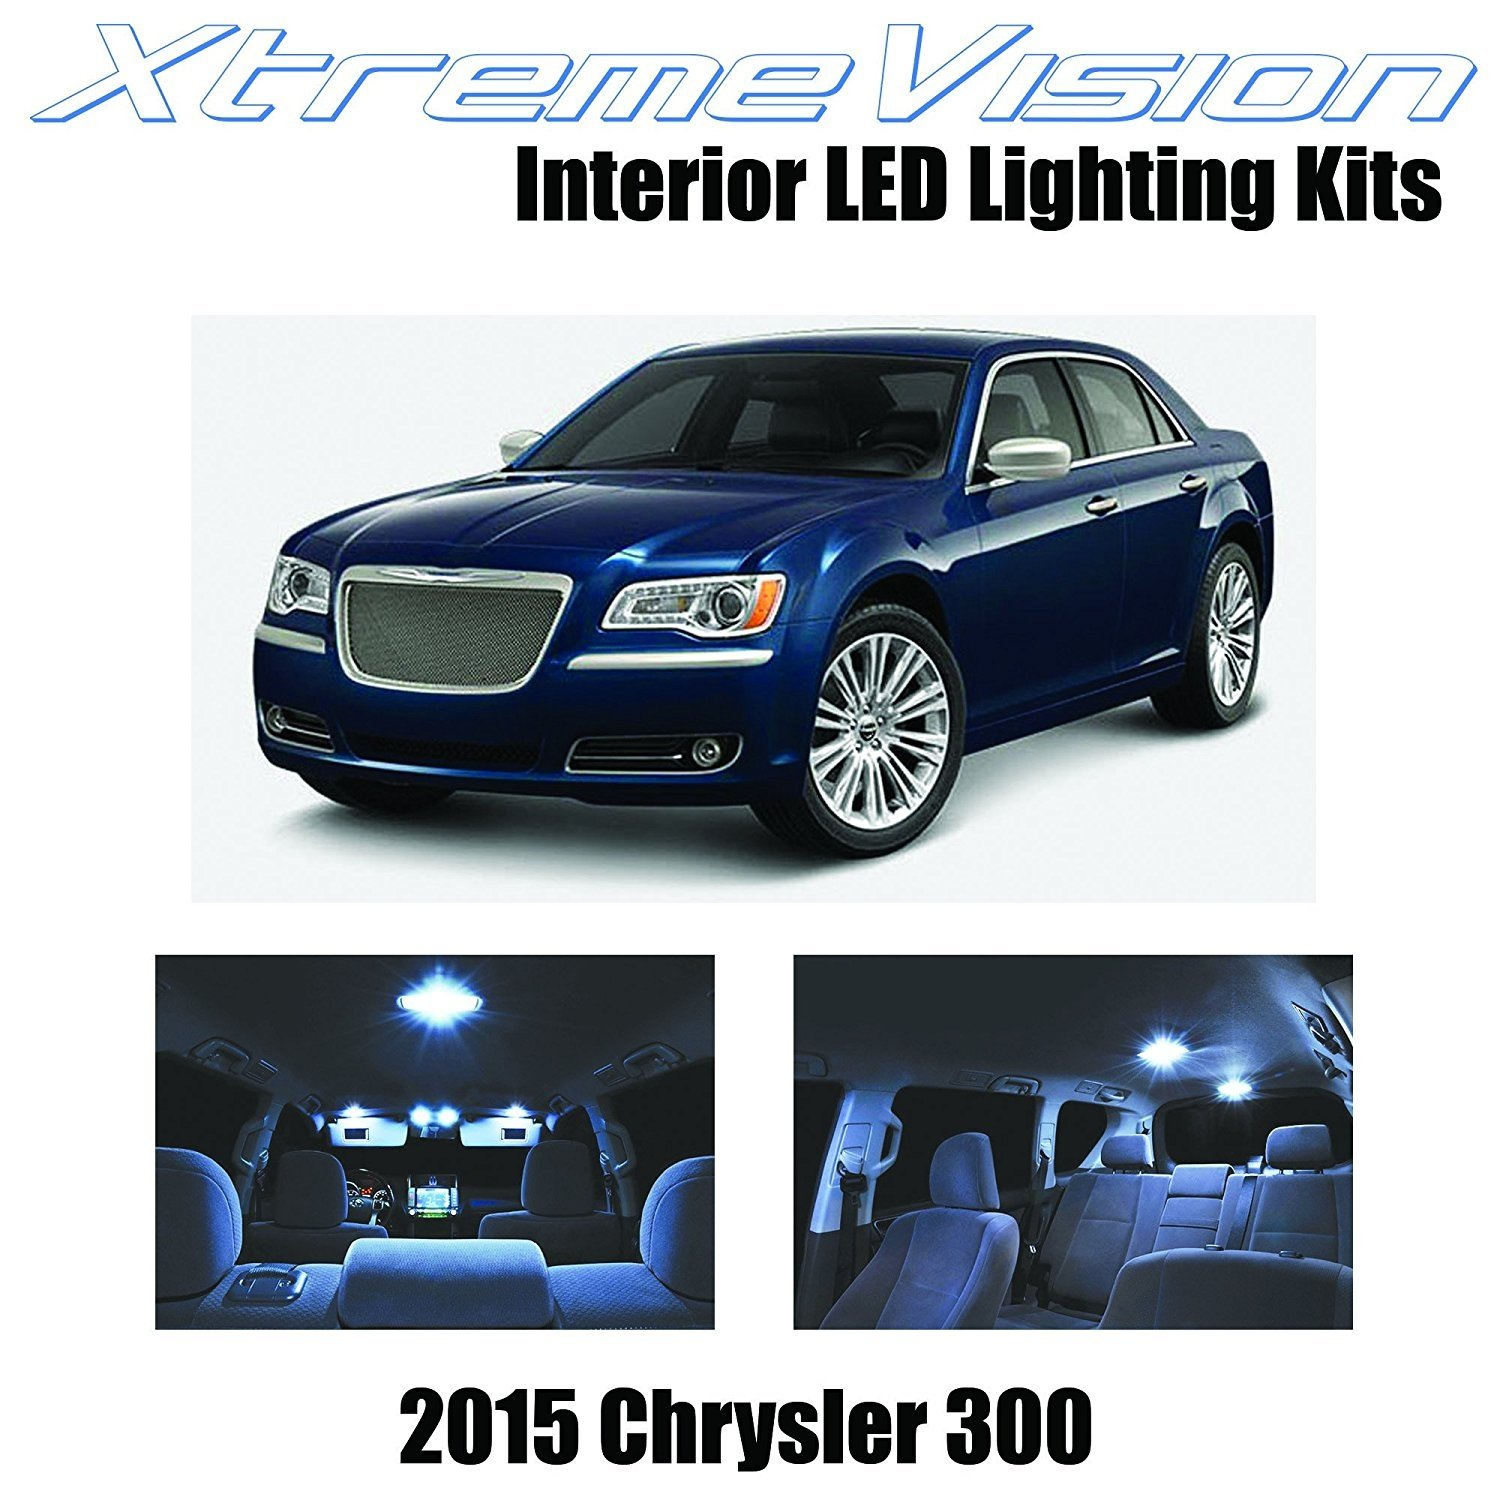 XtremeVision LED For Chrysler 300 / 300C 2015+ (10 Pieces